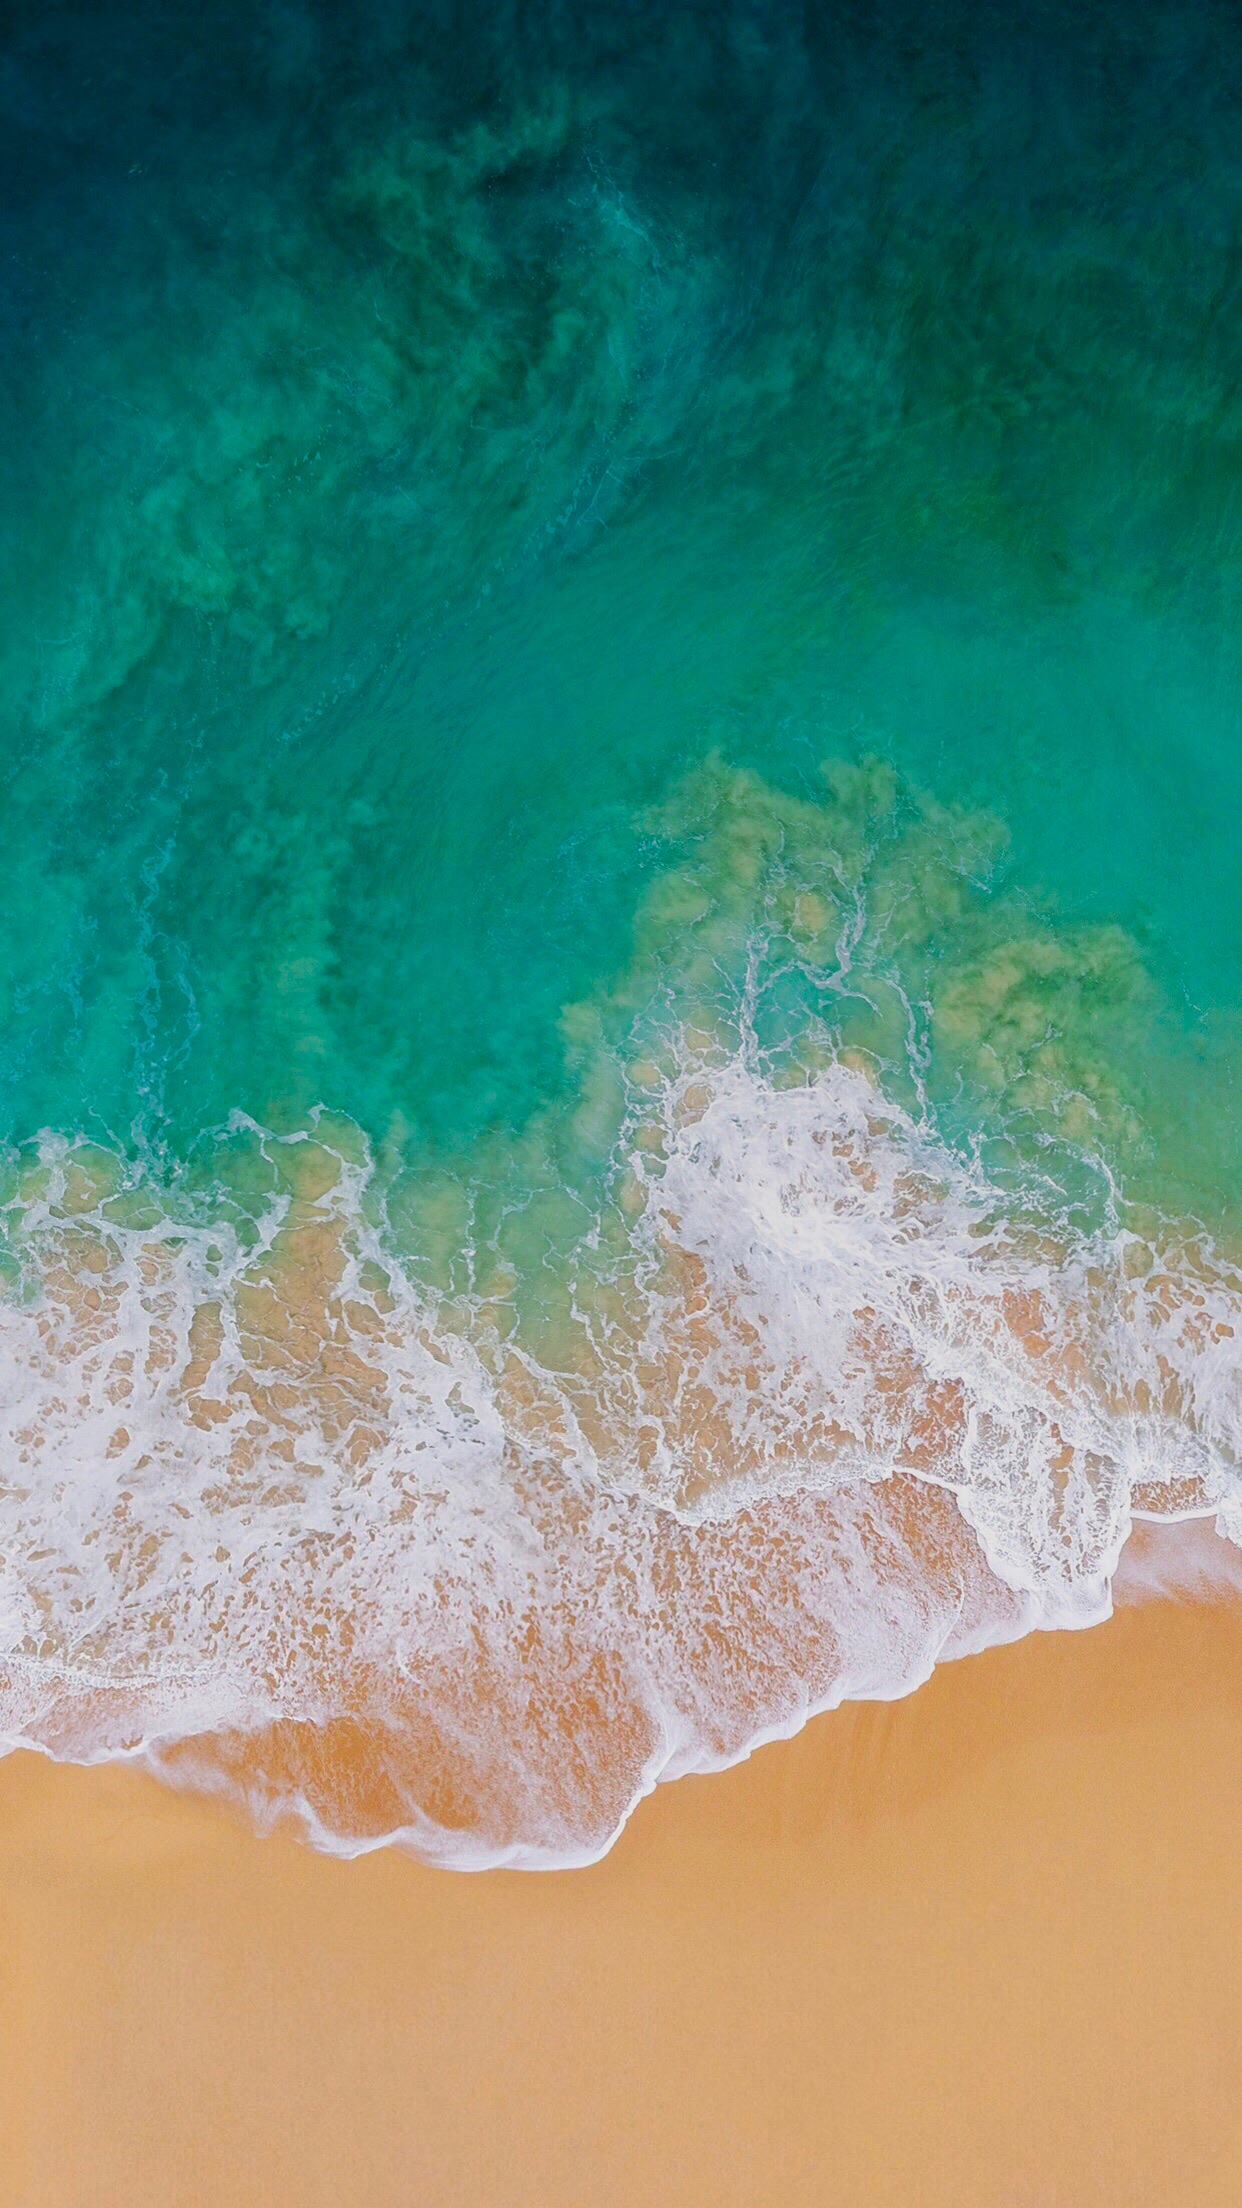 Download And Install The iOS 11 Wallpaper For iPhone iPad And Mac 1242x2208